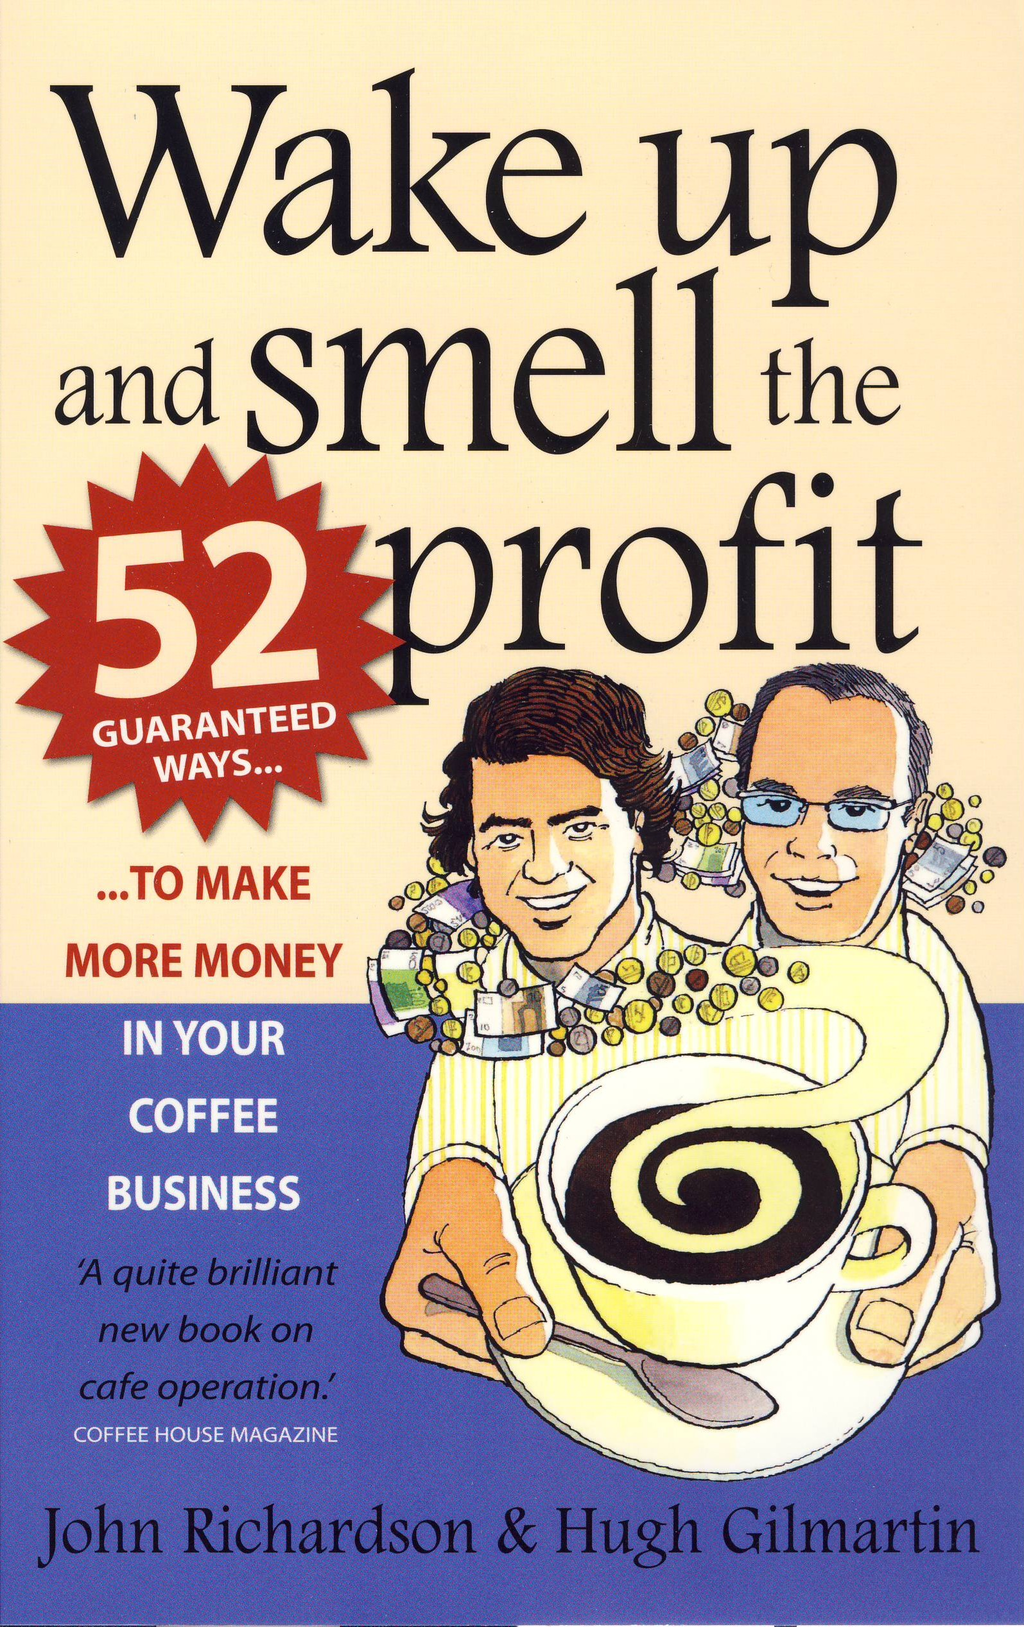 Wake Up and Smell the Profit 52 guaranteed ways to make more money in your coffee business